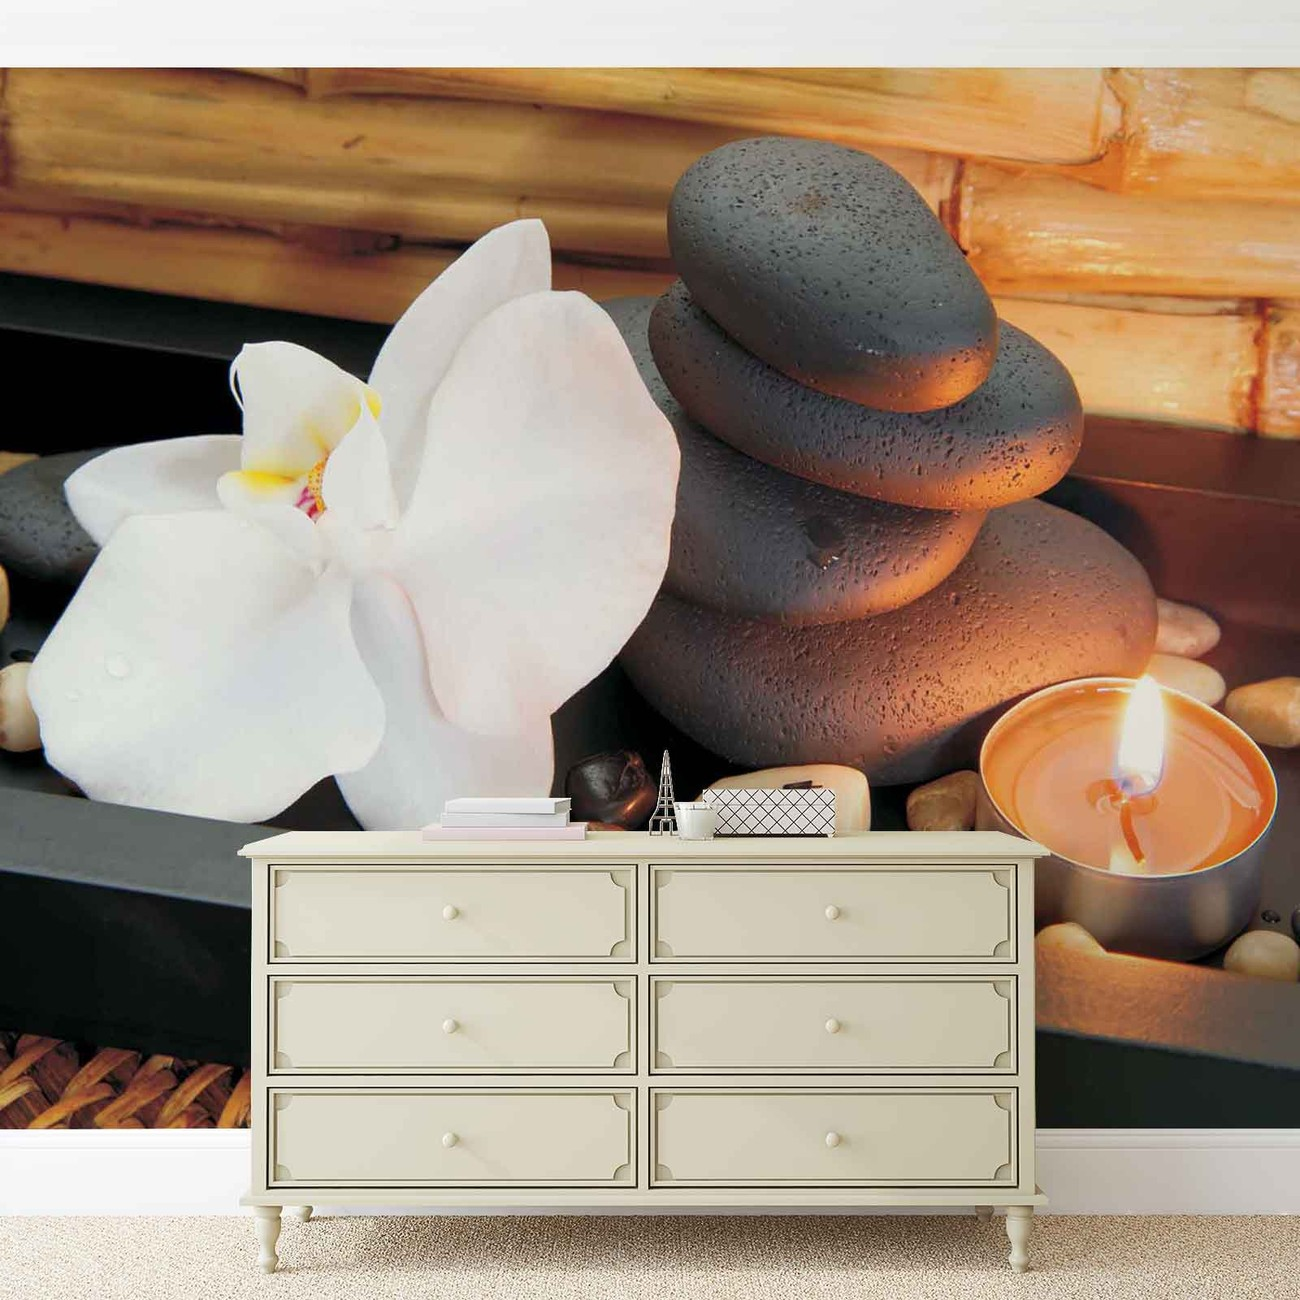 Stone peaceful zen wall paper mural buy at europosters for Poster mural zen